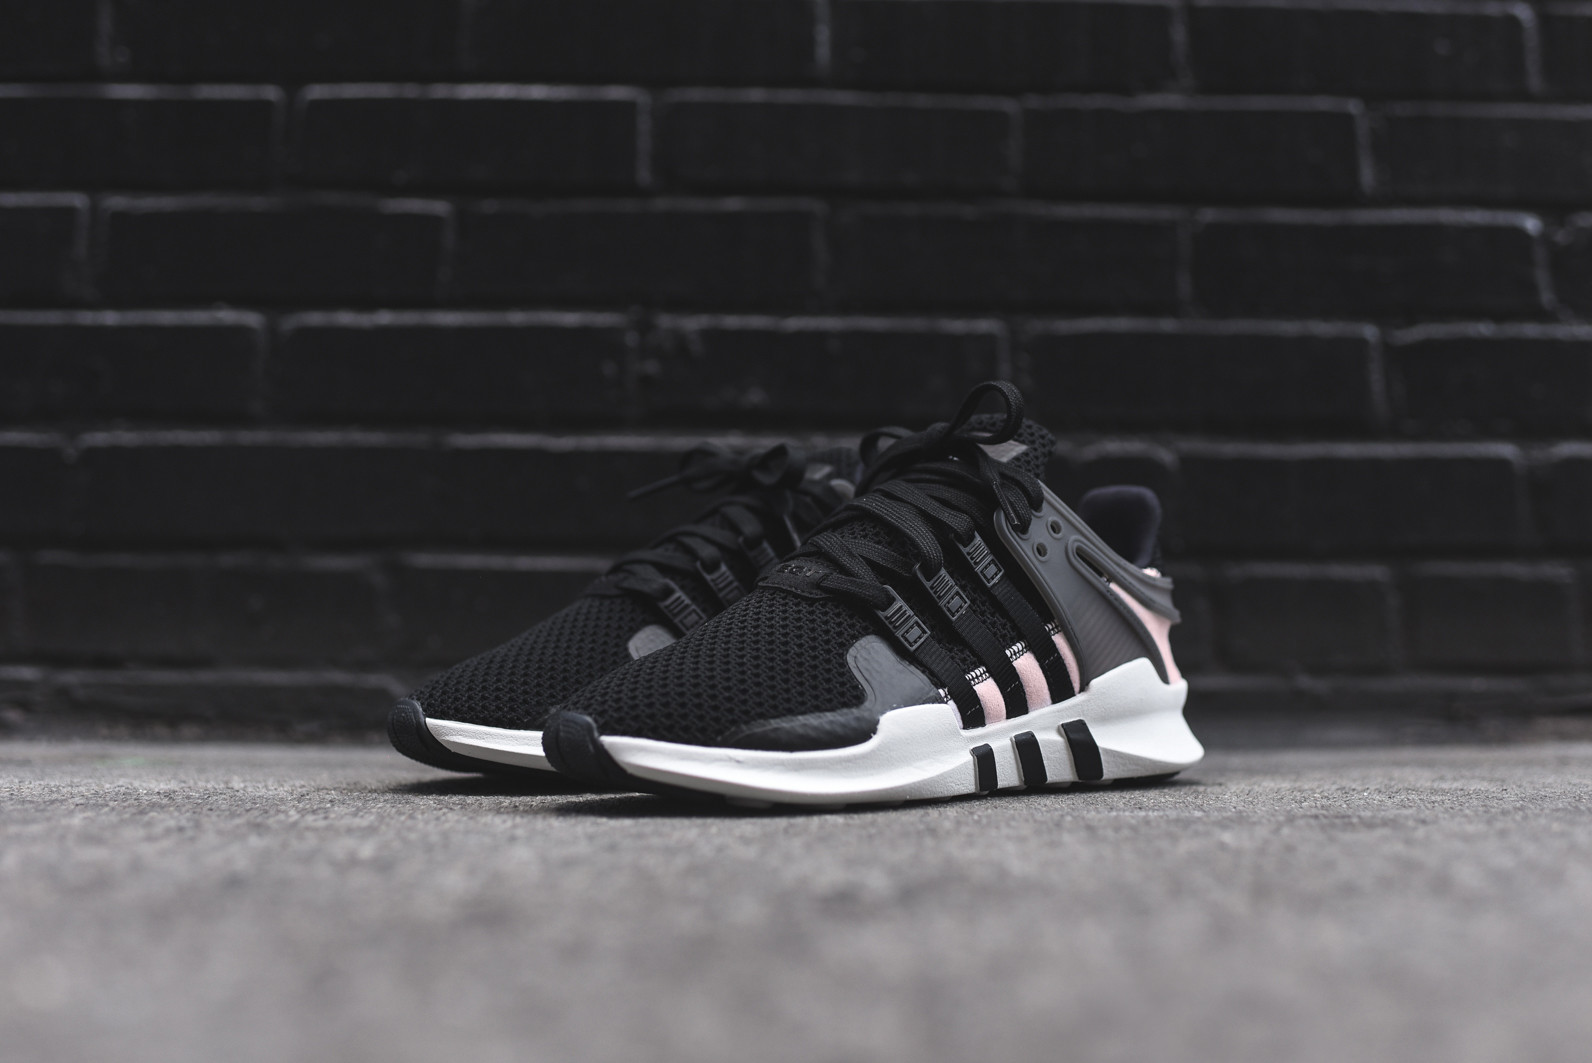 554937f5 The Women's adidas EQT Support ADV Clear Pink Is Now Available ...